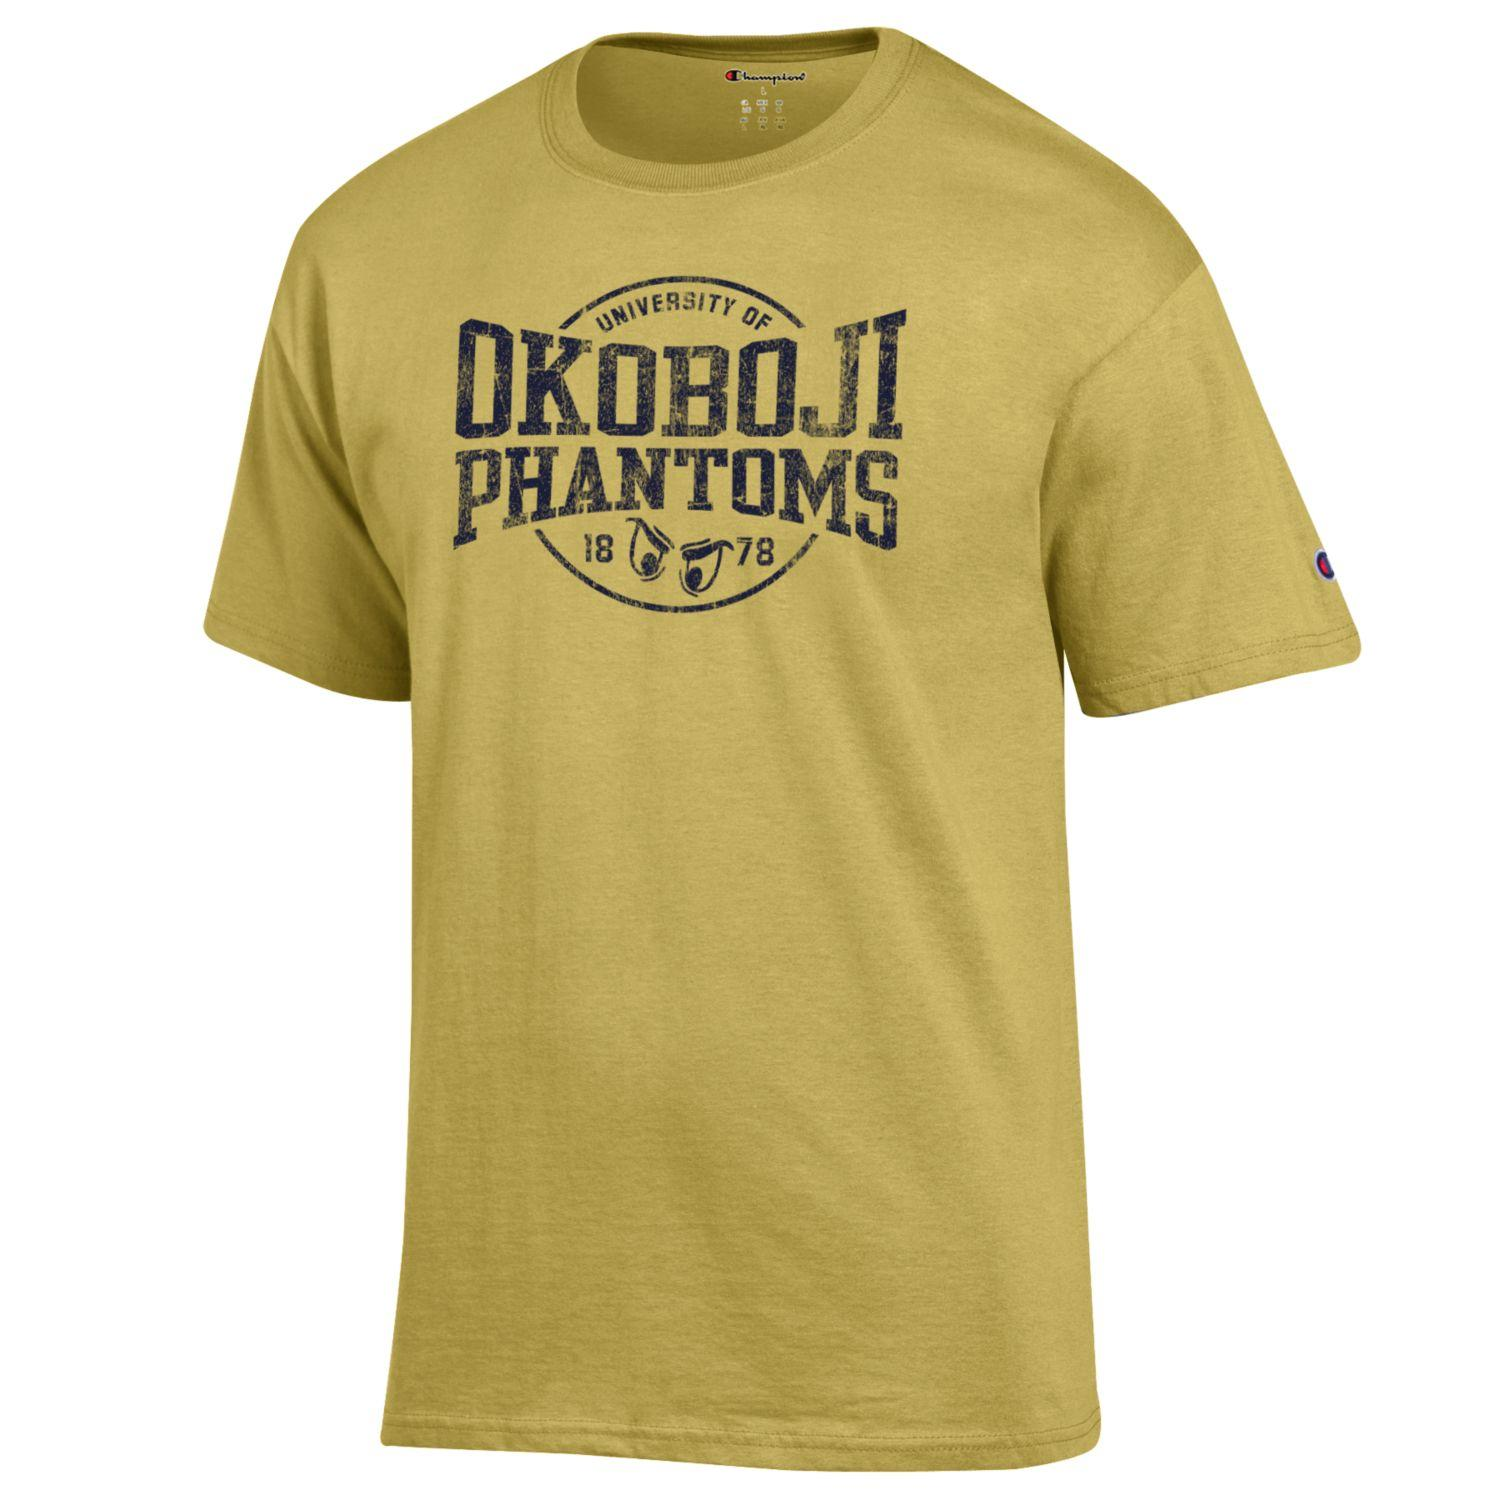 OKOBOJI PHANTOM EYES SHORT SLEEVE TEE - SPICY GOLD